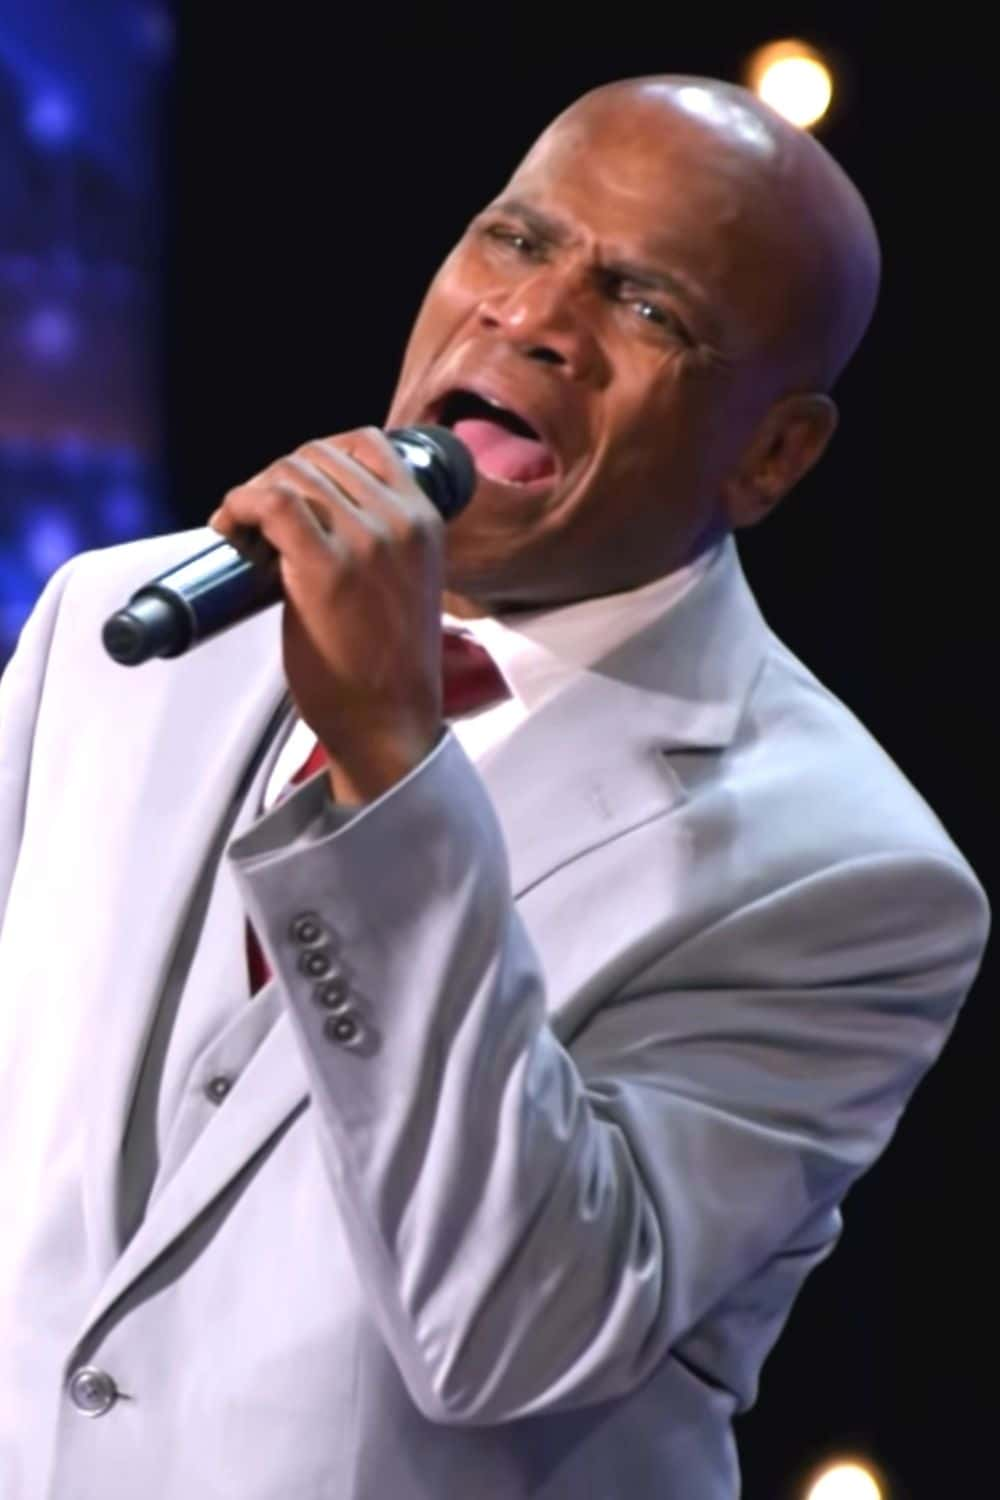 wrongly-incarcerated-singer-agt